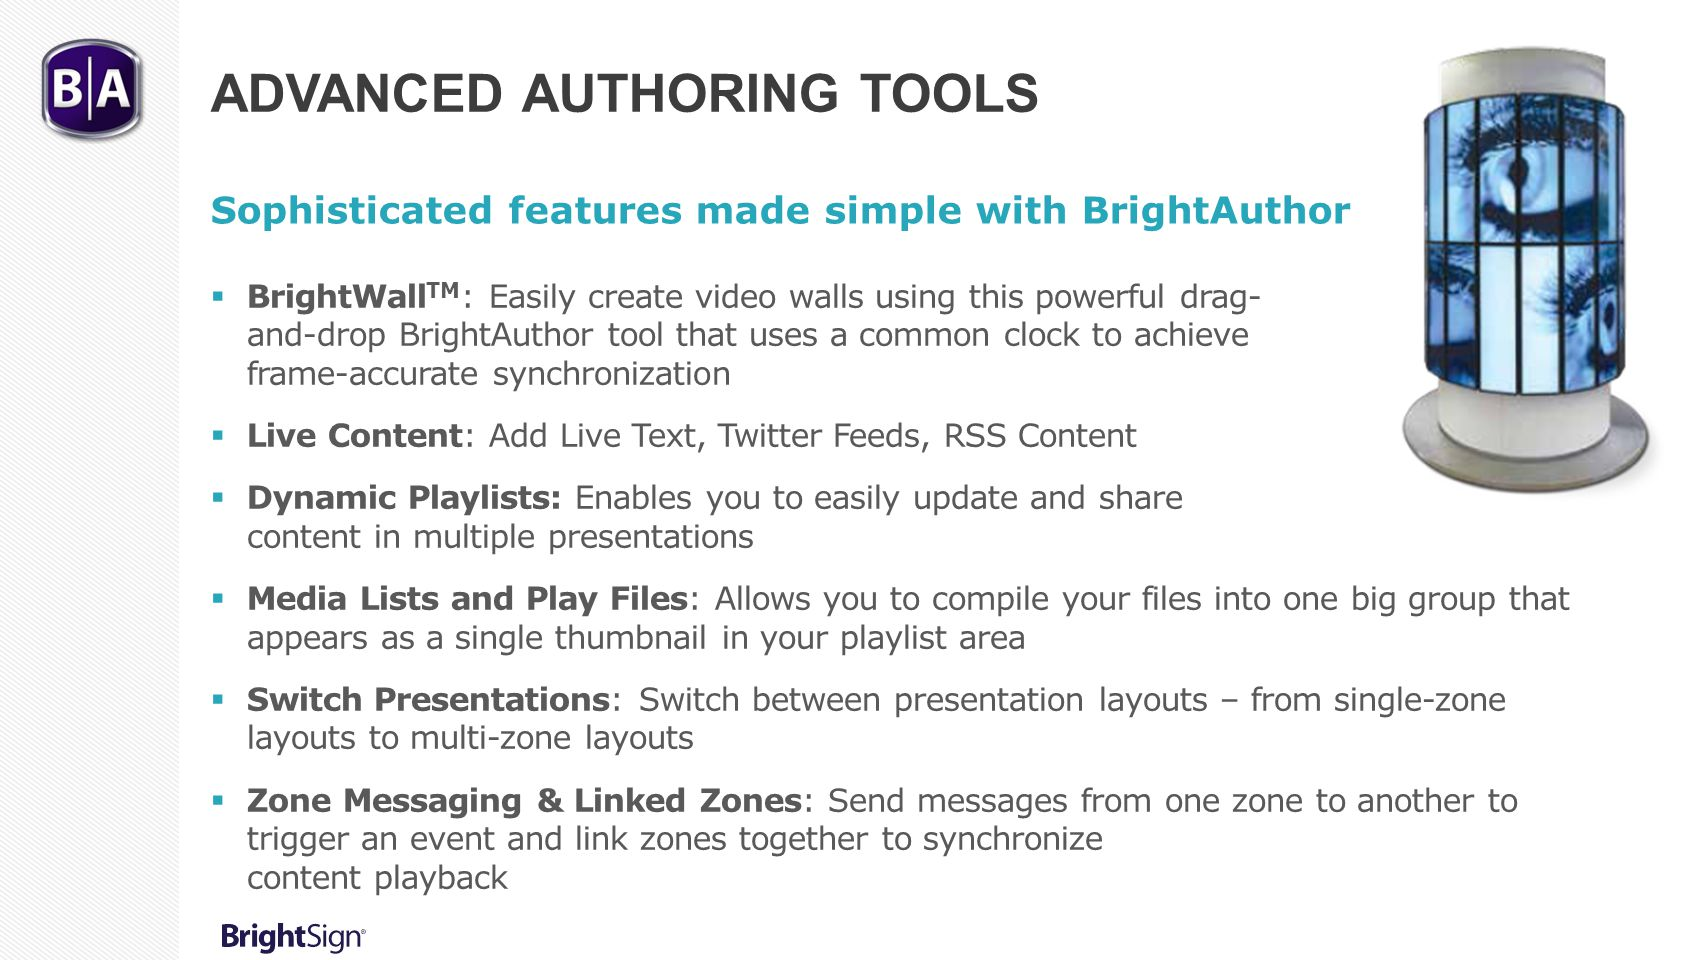 Advanced Authoring Tools